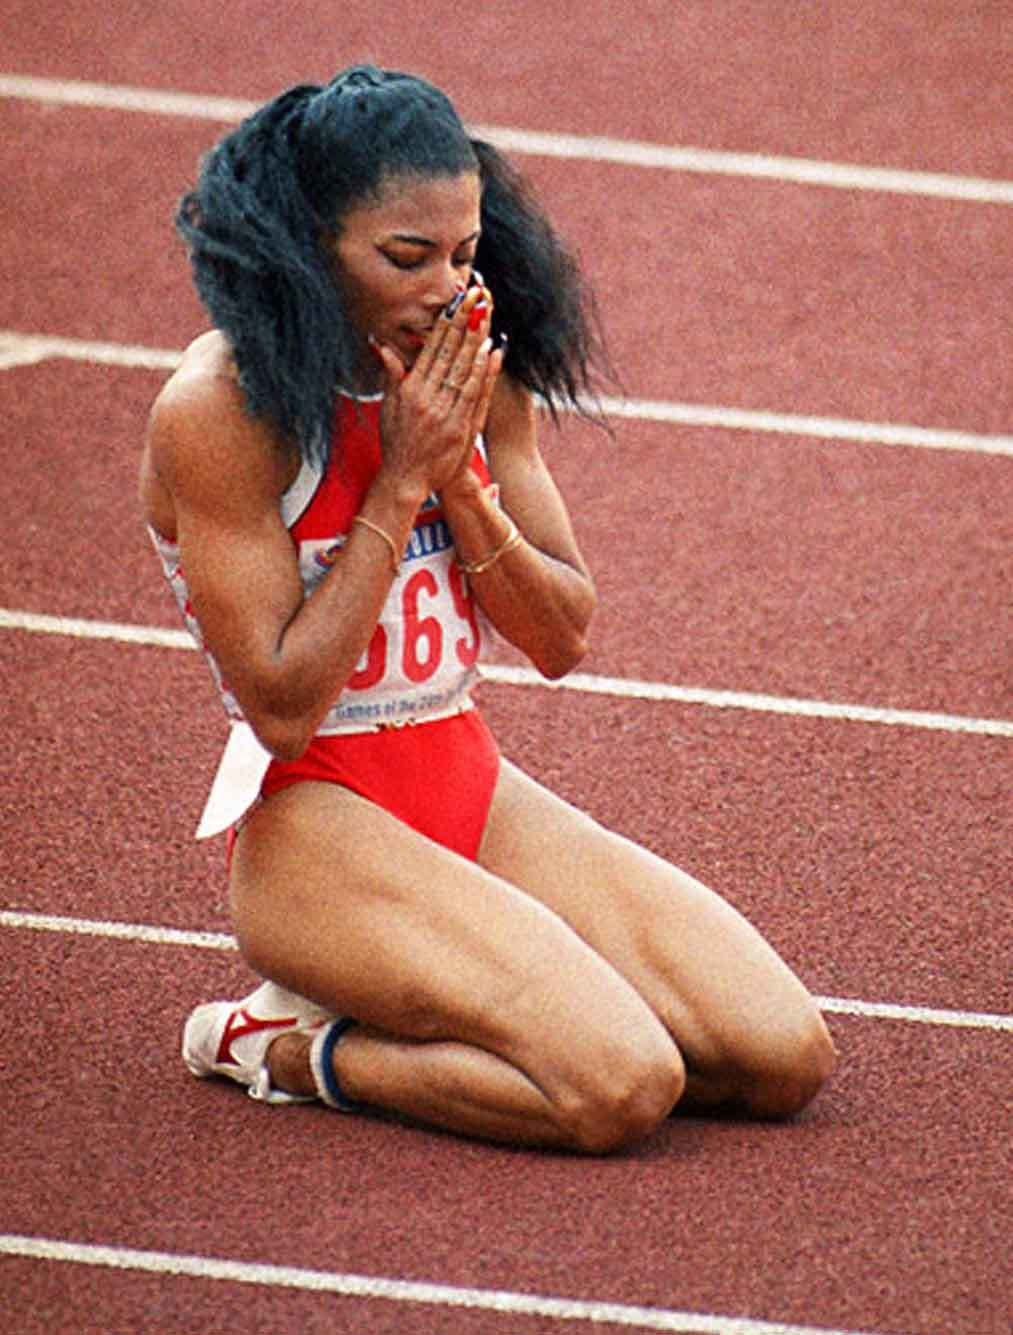 Florence Griffith Joyner 5 Olympic medals